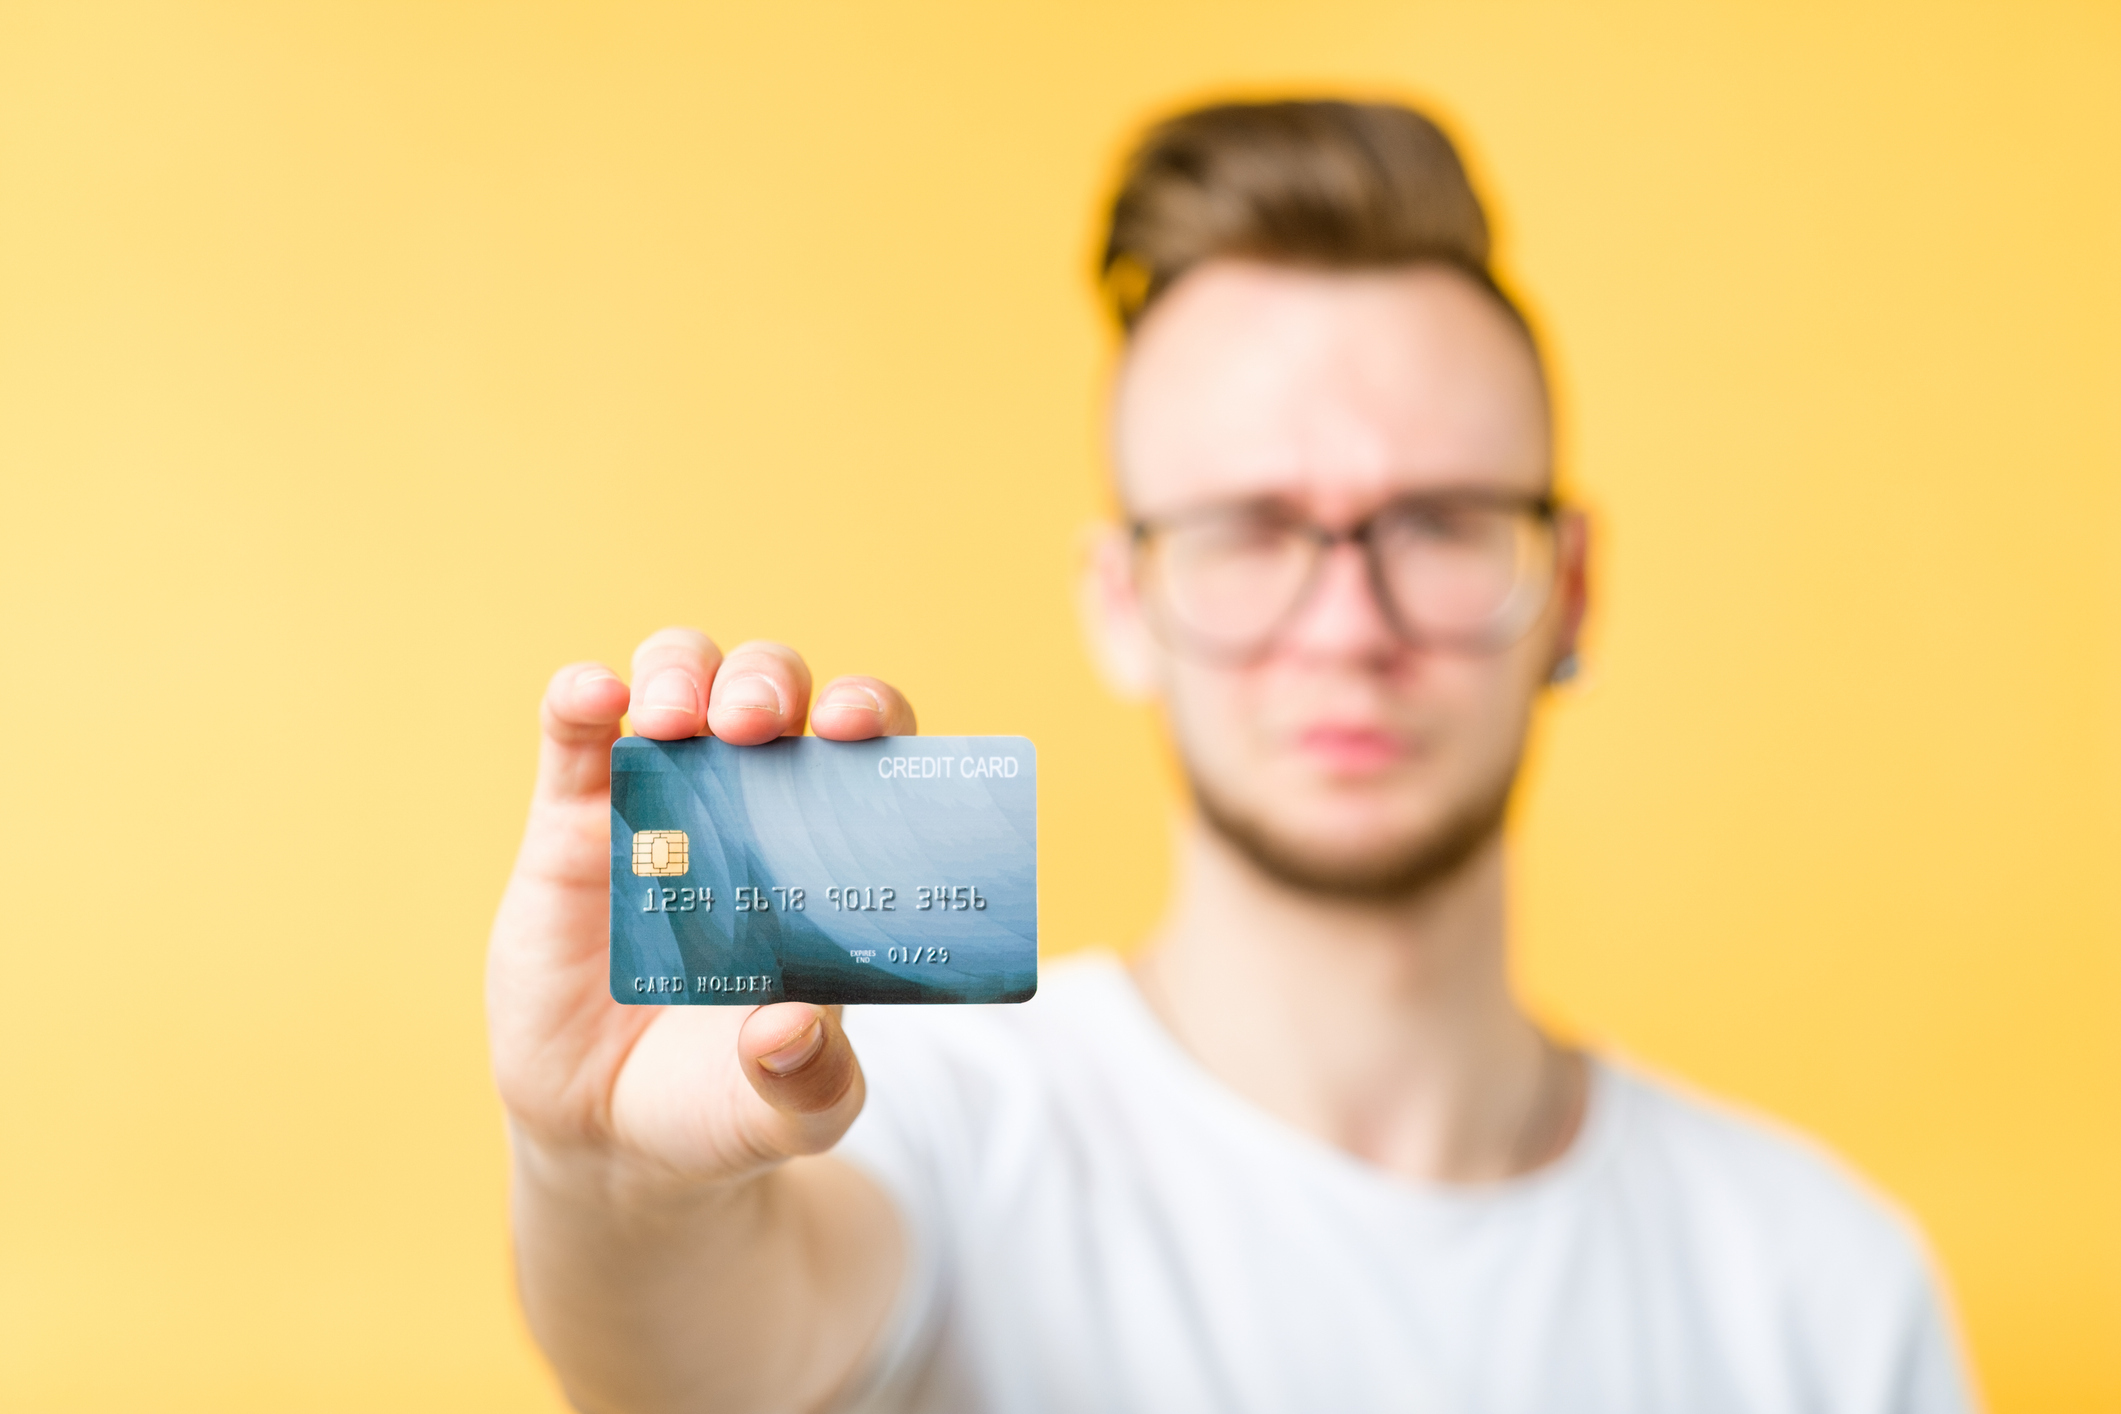 Out-of-focus bespectacled young man with punk hairstyle presenting credit card.